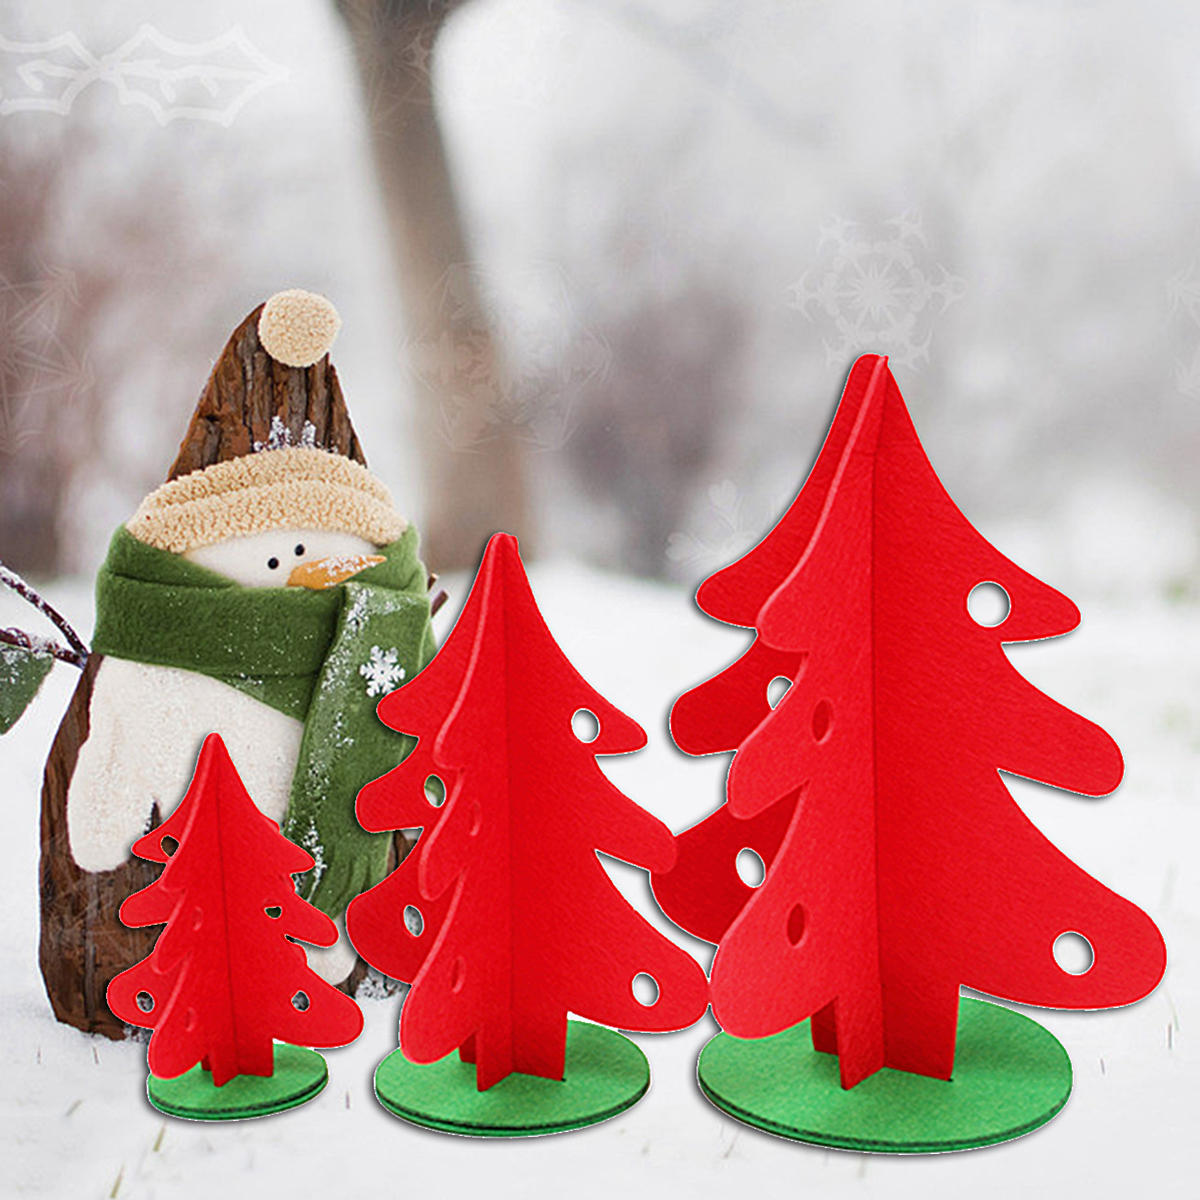 Vintage Christmas Tree Home Shop Ornament Decoration Fabric Red Green Tree COD